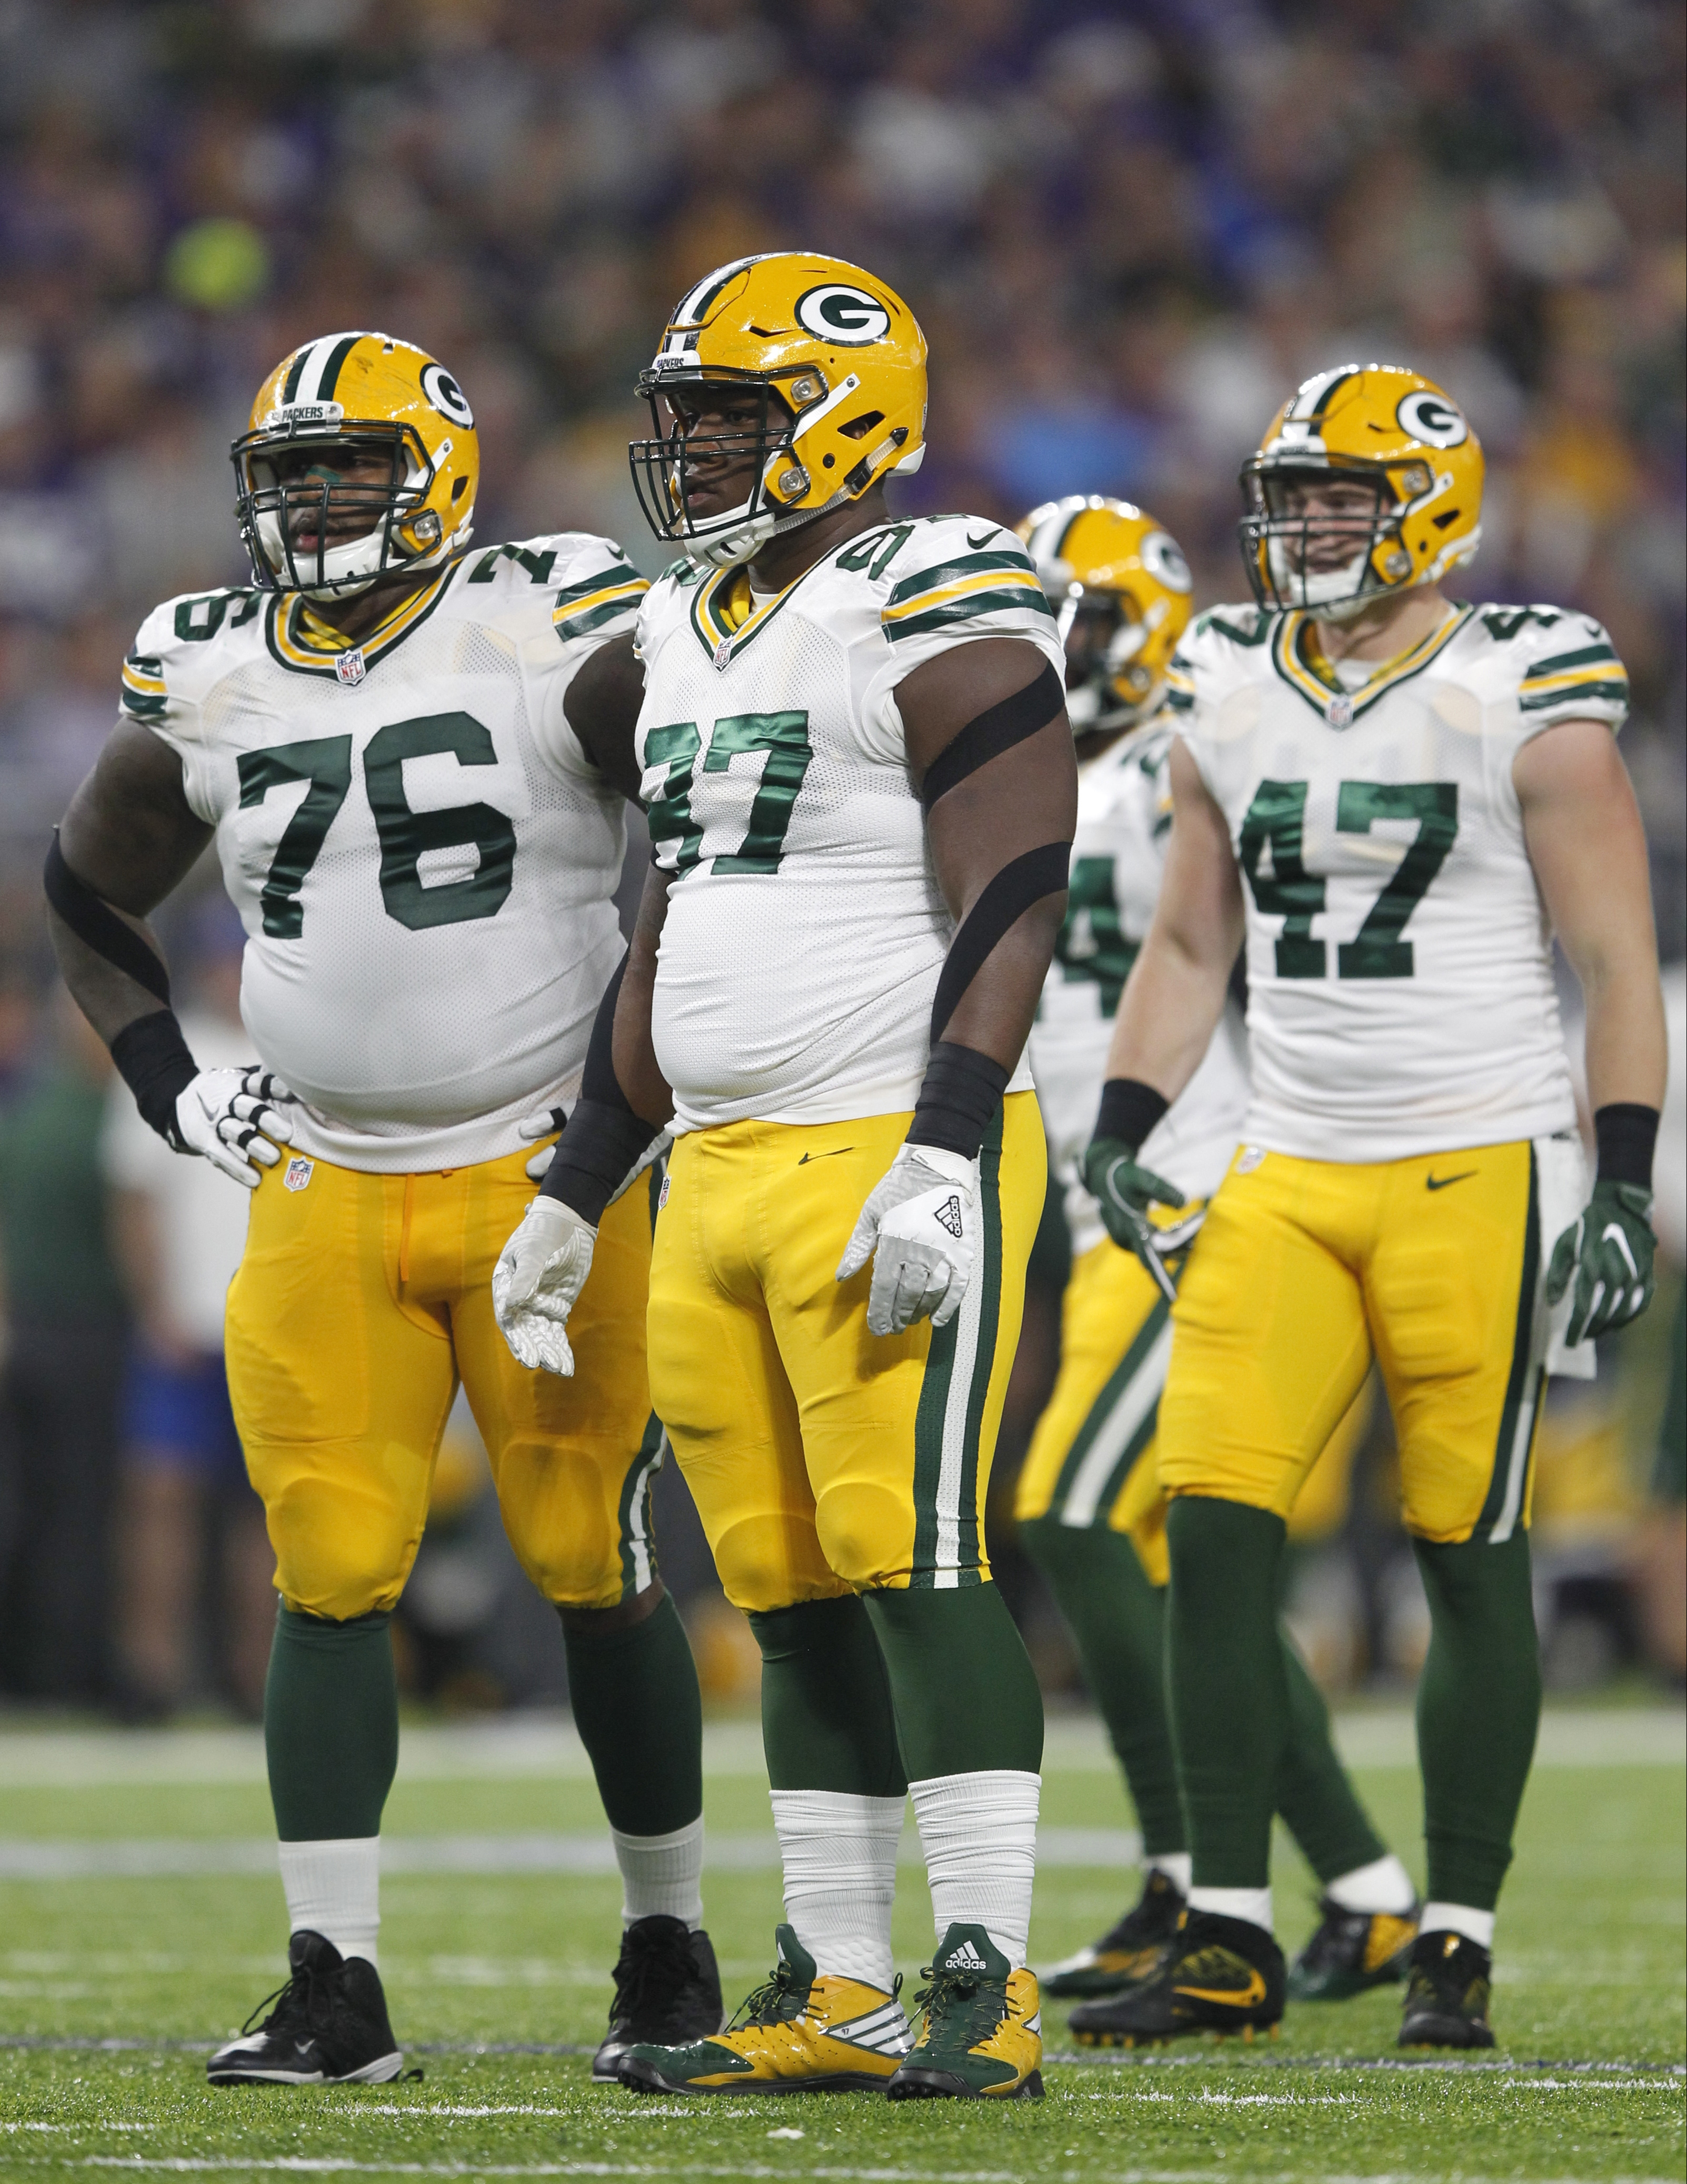 File-This Sept. 18, 2016, file photo shows Green Bay Packers defenders Mike Daniels (76), Kenny Clark (97) and Jake Ryan (47) getting set for a play during the first half of an NFL football game against the Minnesota Vikings in Minneapolis. he Packers hav